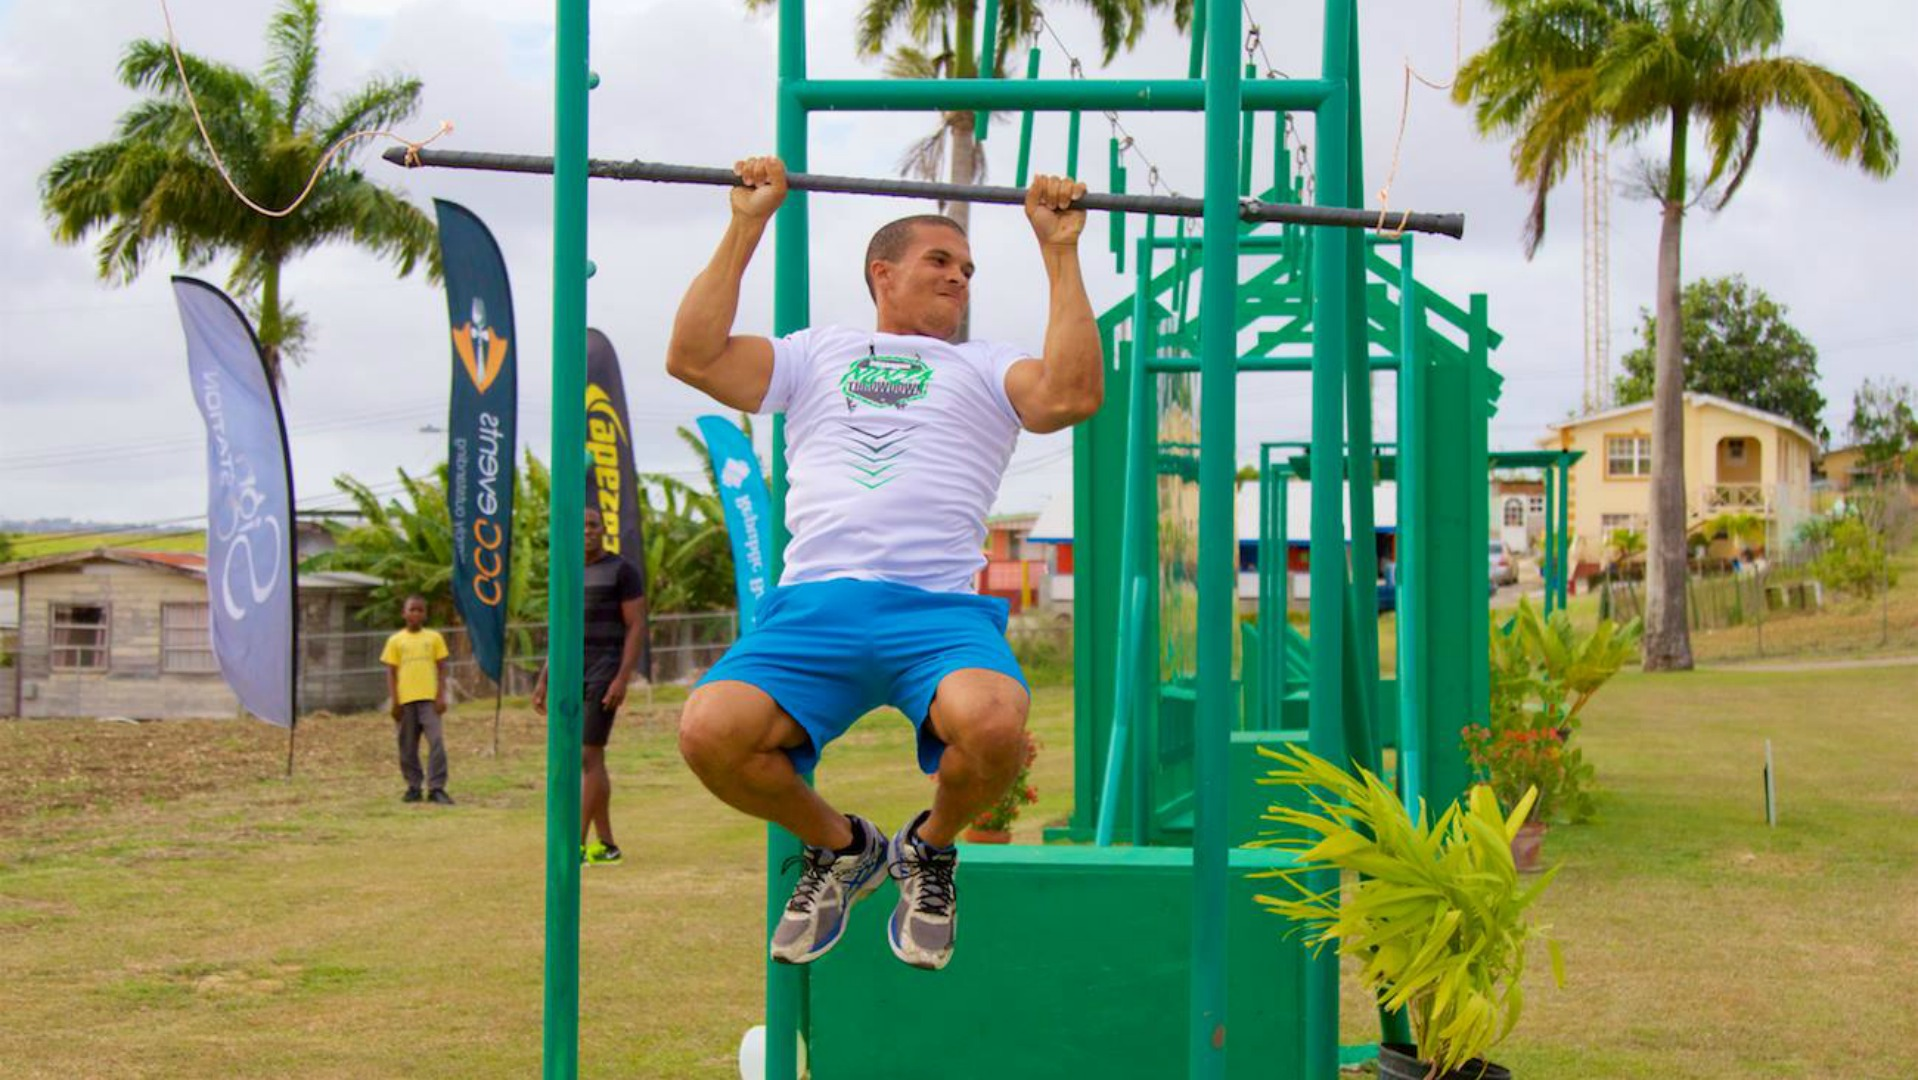 Delano Hinds, organiser of the Barbados Ninja Throwdown, demonstrating one of the obstacles on the course. (Photo: Life After Gravity)